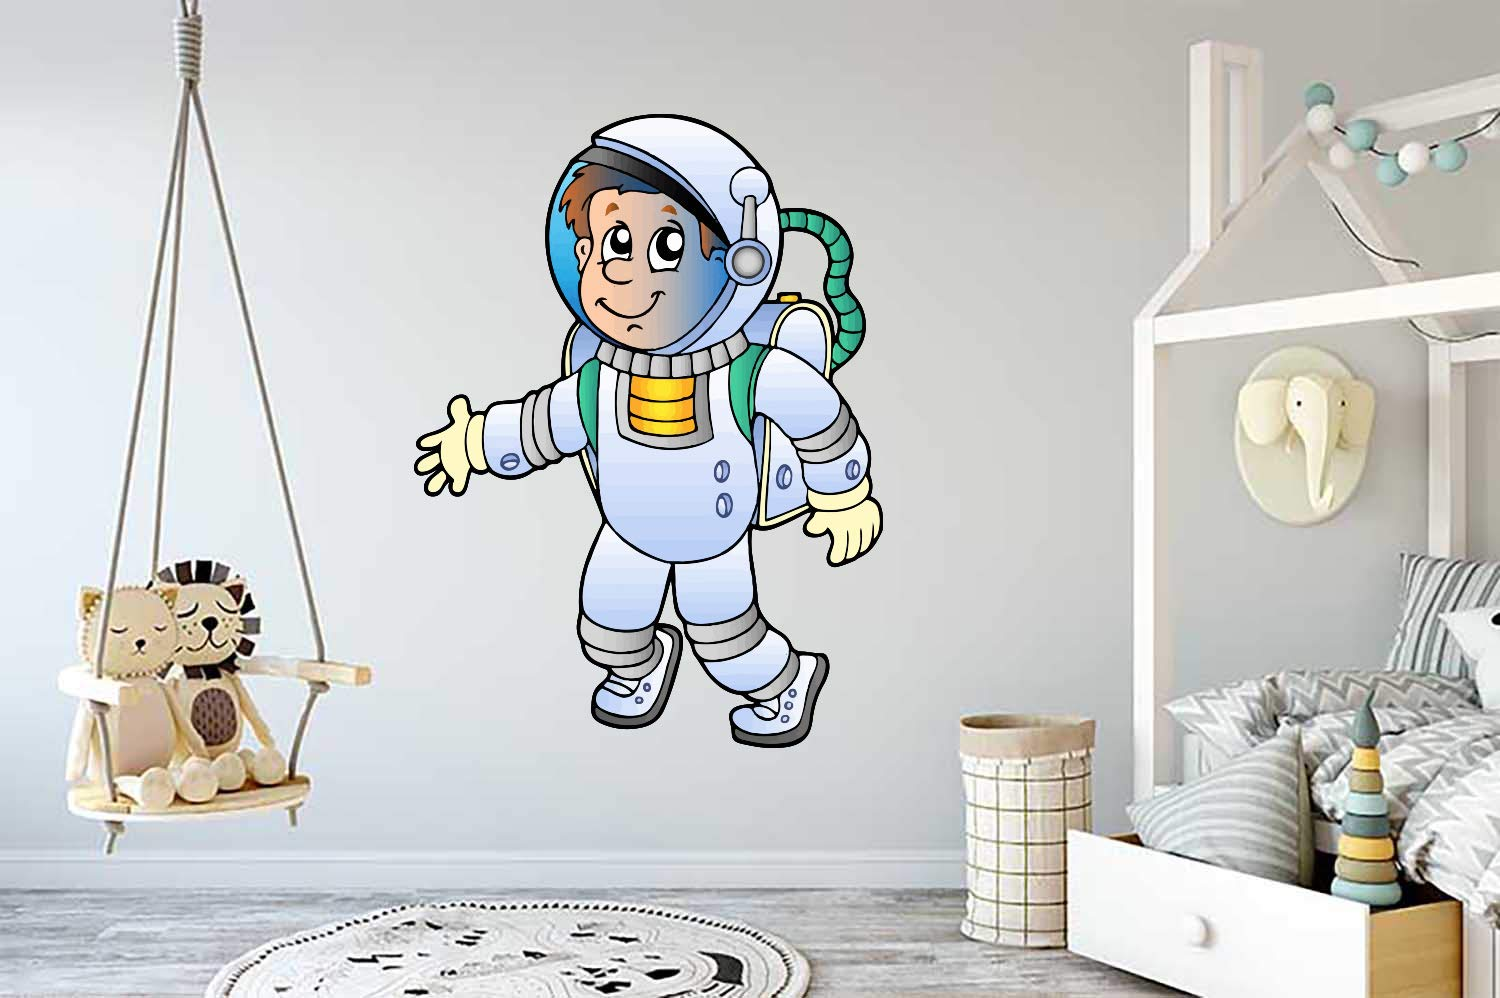 Astronaut Boy Space Kids Room Max 90% OFF Wall Vinyl Decal Max 68% OFF Car Mural Sticker